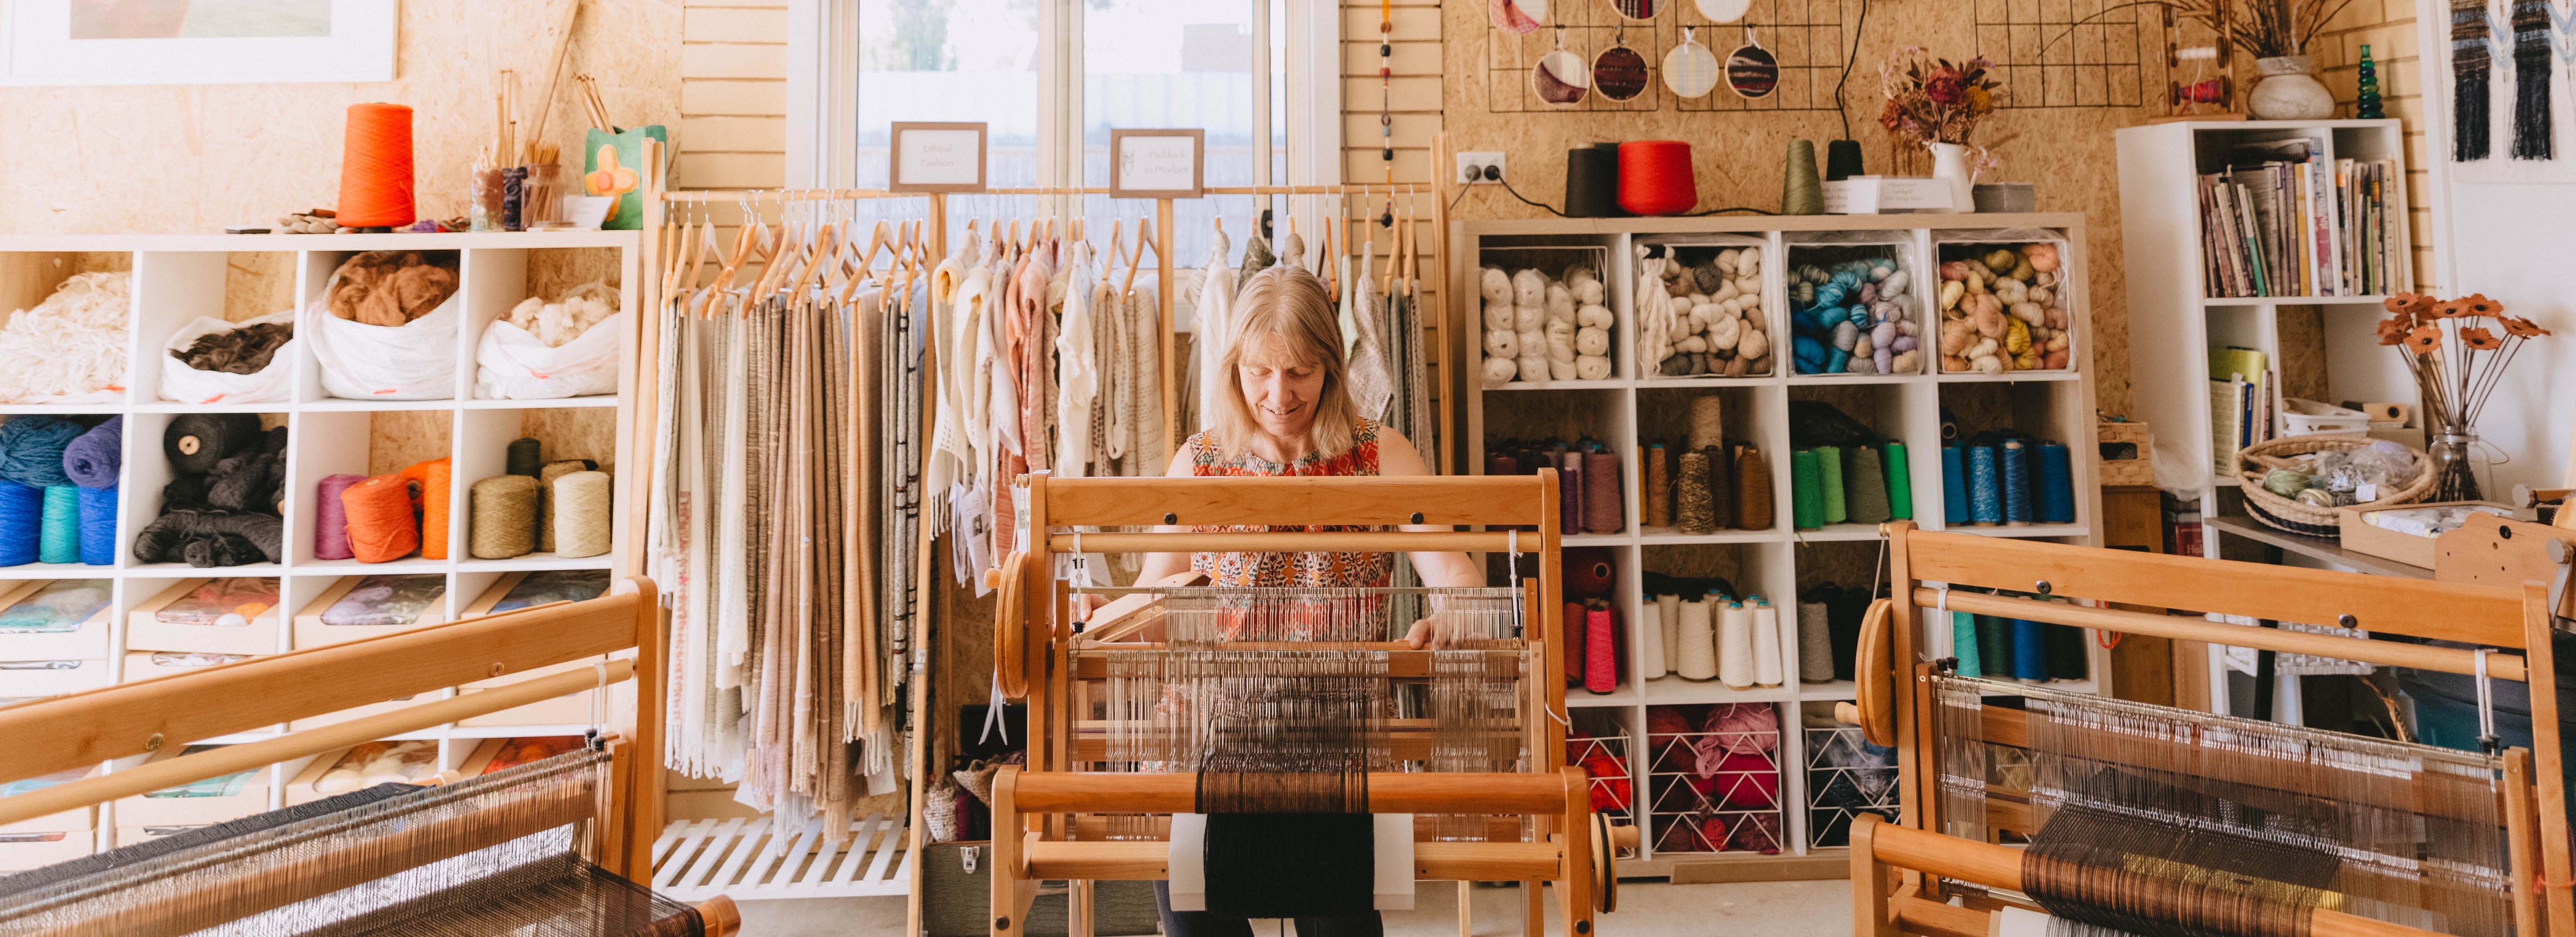 Weaving workshop at Ashculme Textiles in Wagga Wagga